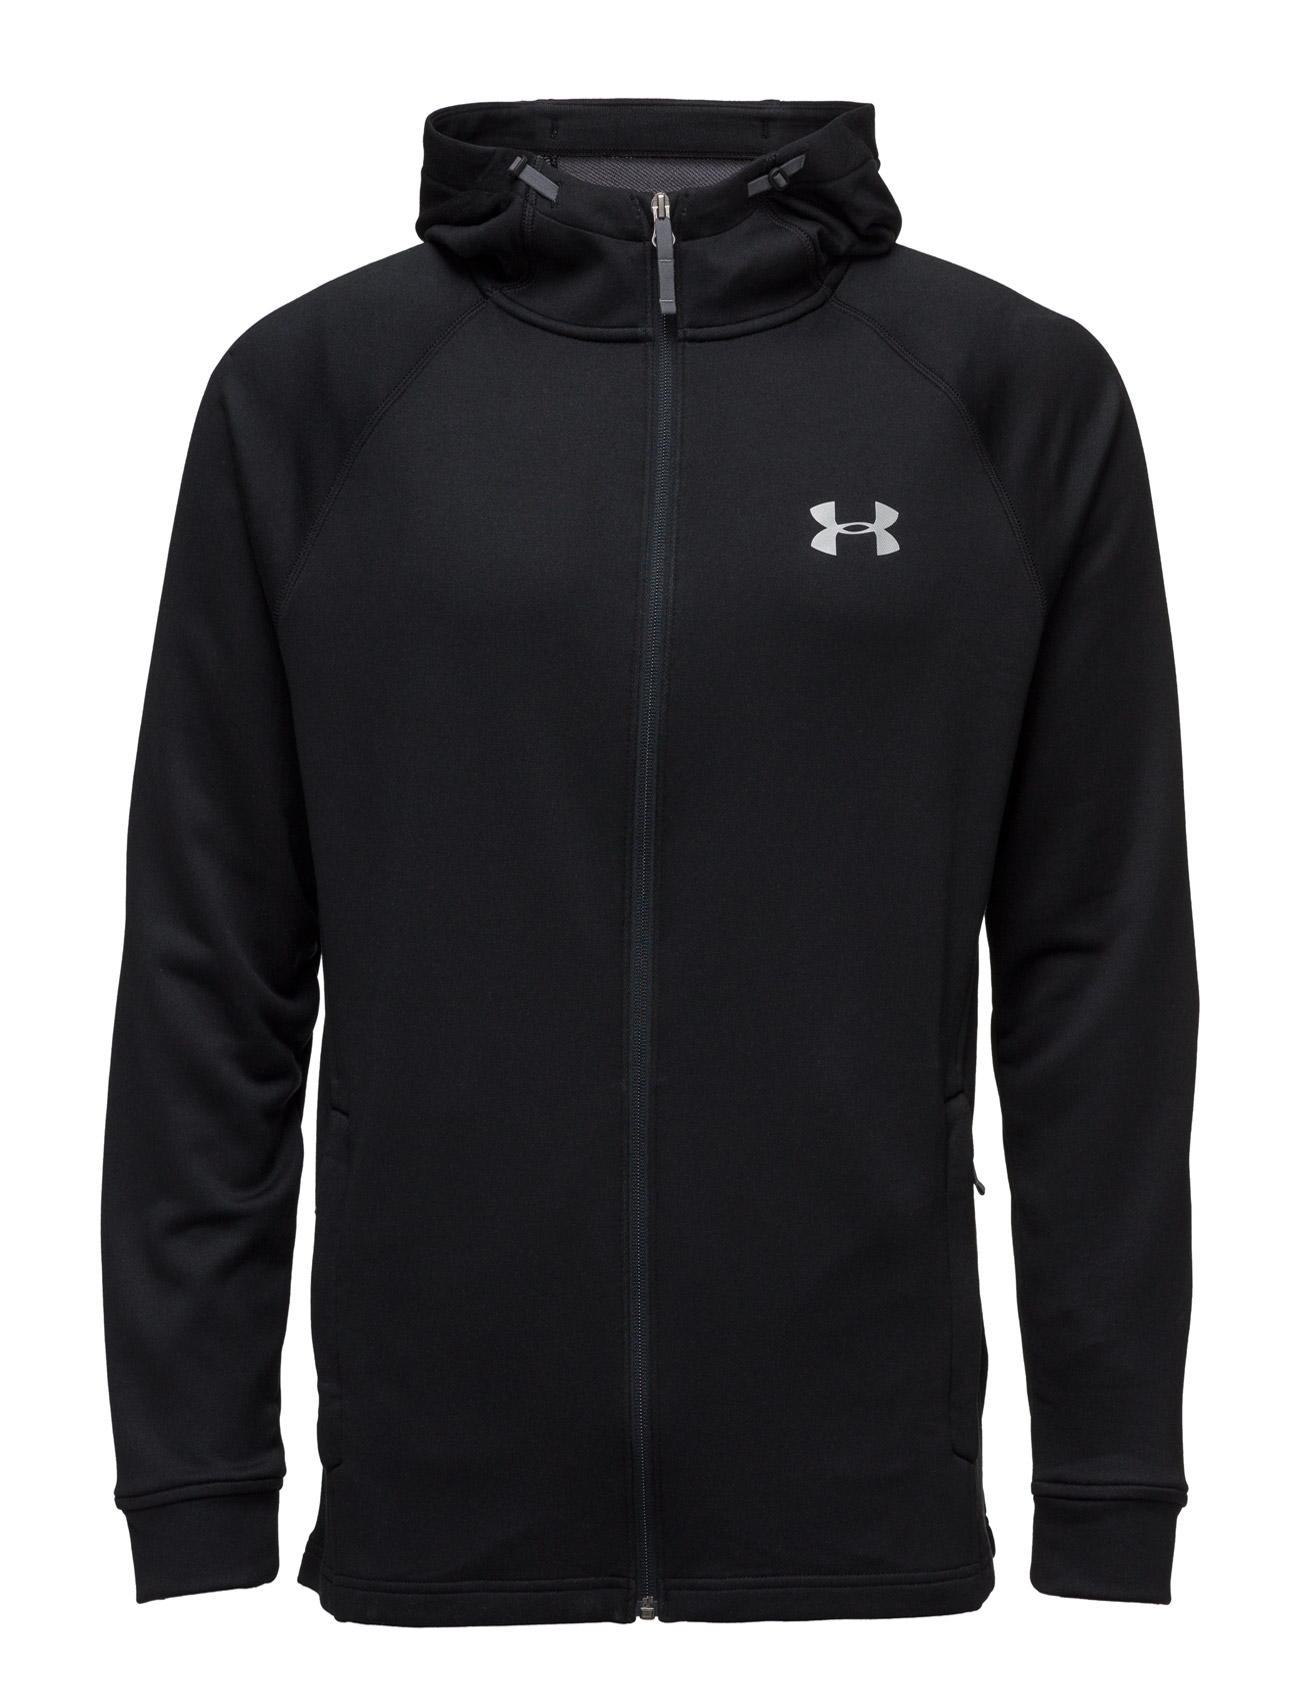 Tech Terry Fitted Fz Hoodie Under Armour Sports sweatshirts til Herrer i